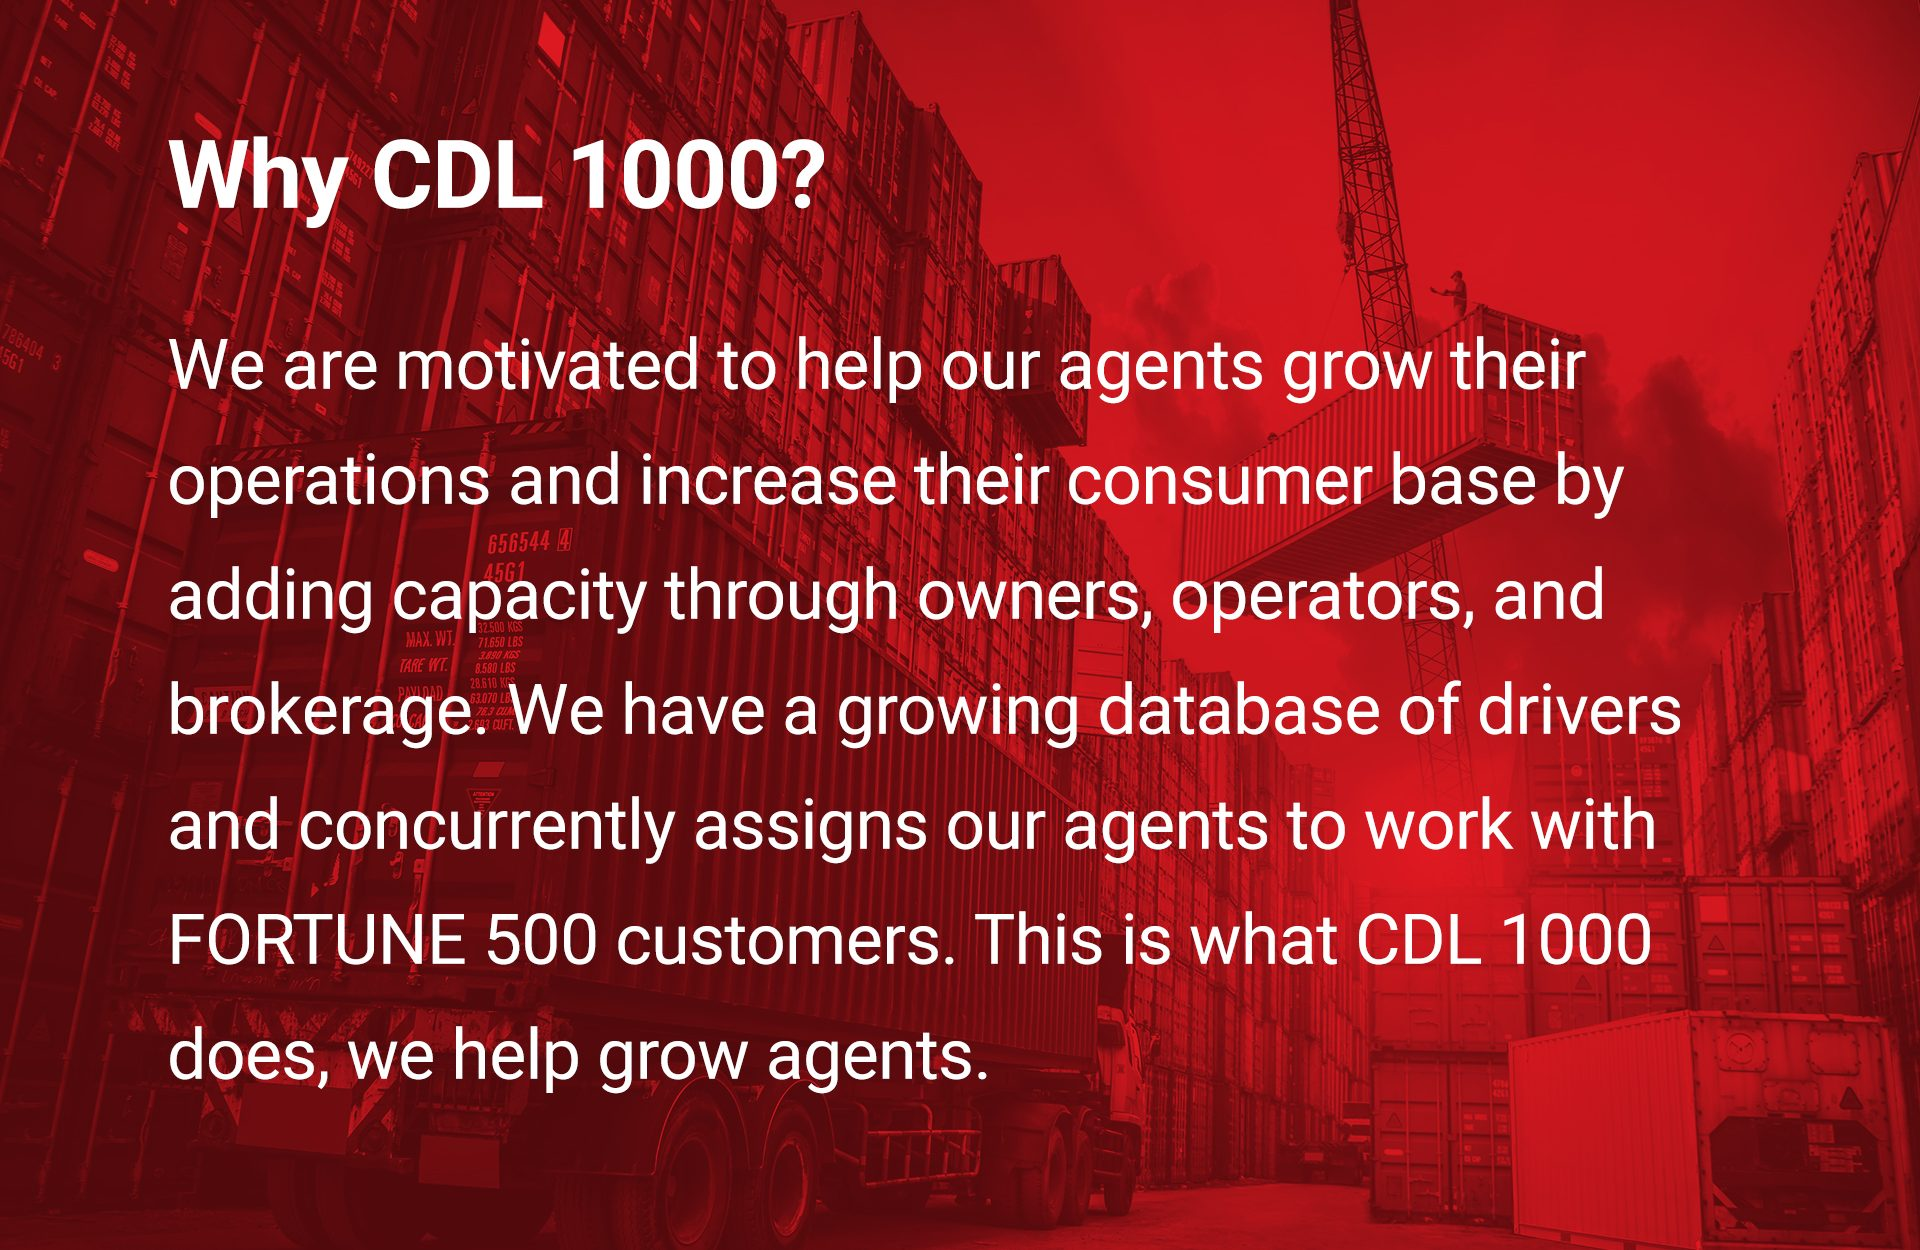 CDL1000-Text1_Mobile